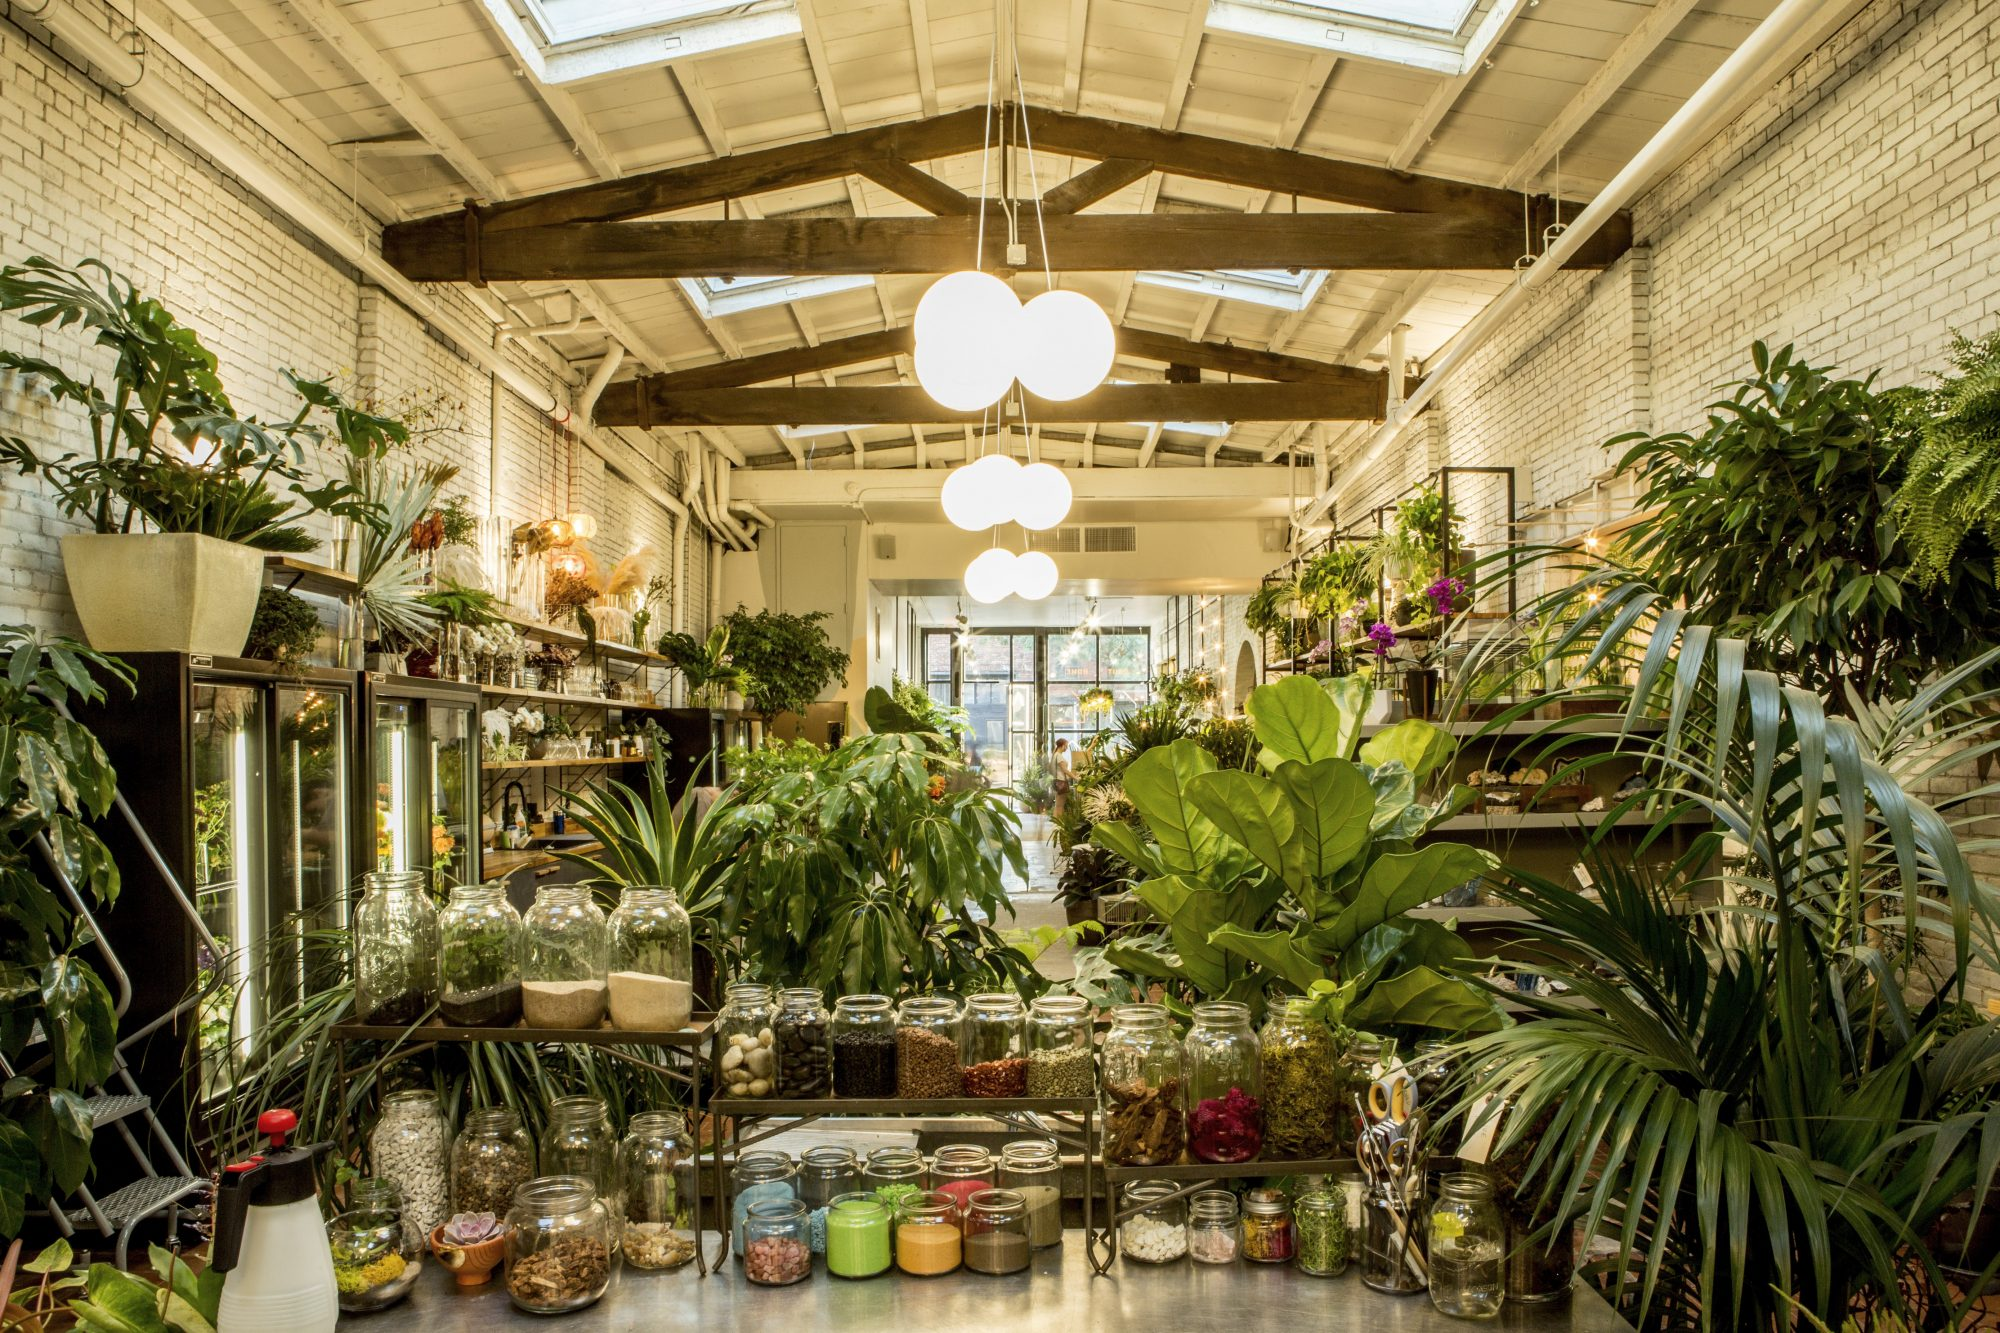 12 places for gardening plant and flowers classes in nyc for Indoor gardening nyc